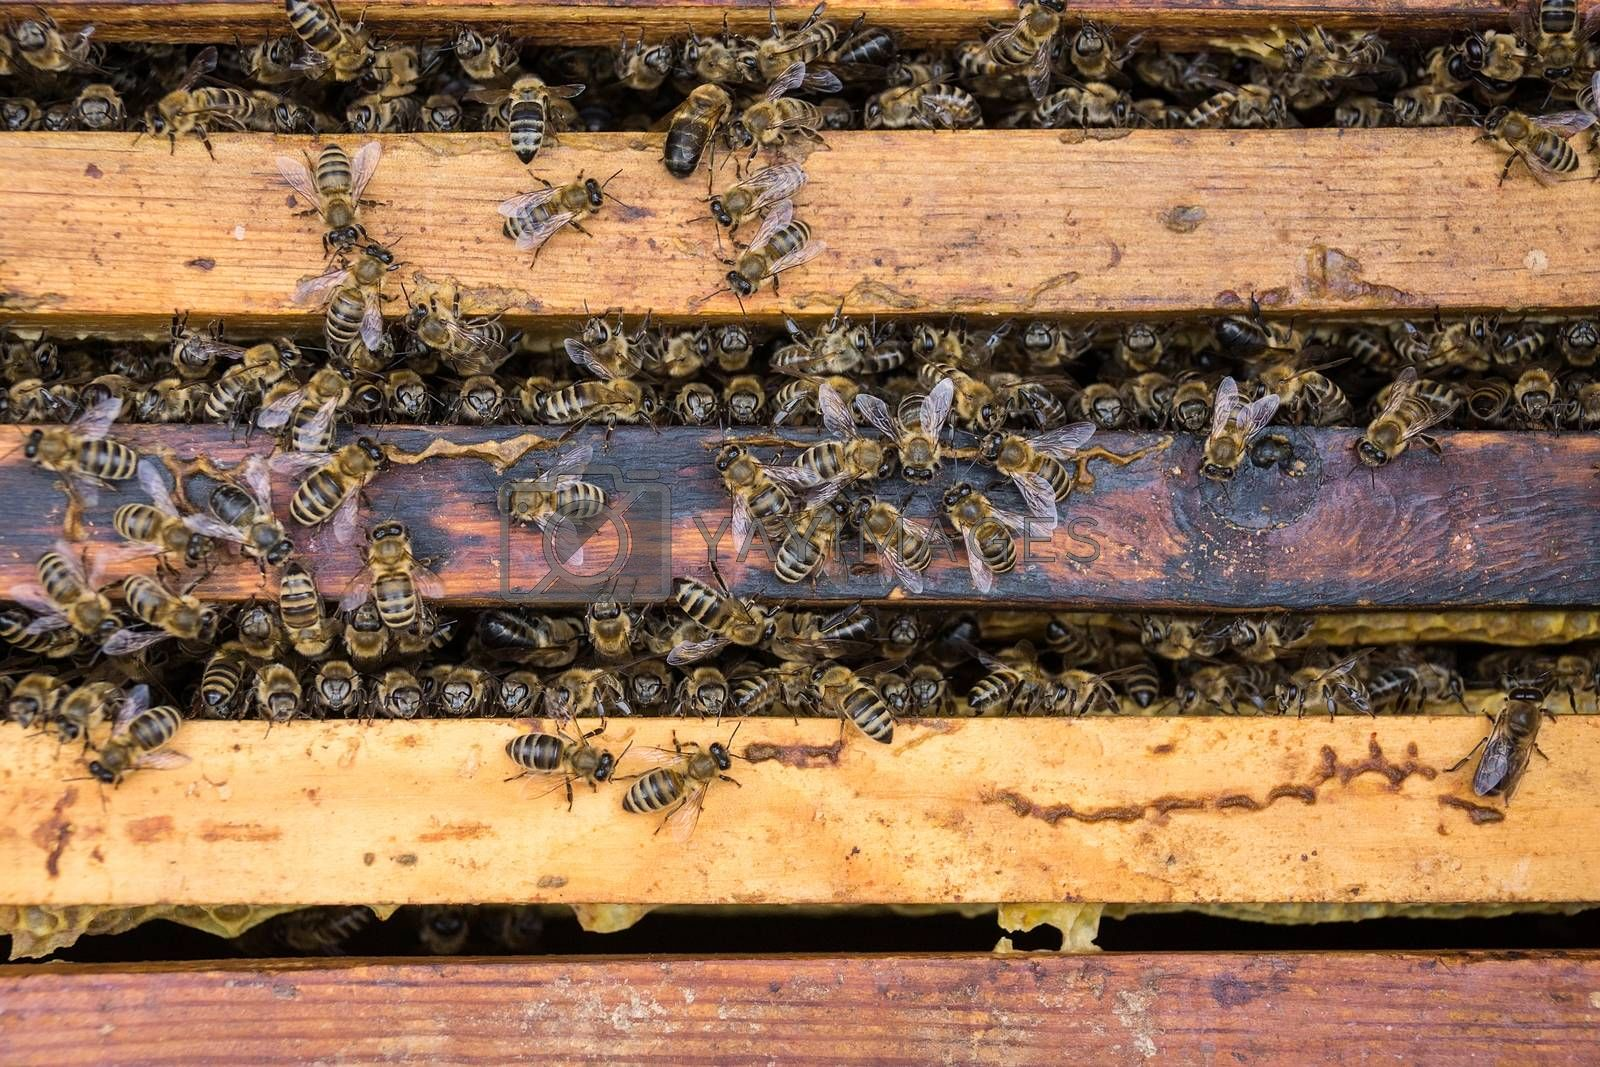 Bees are paying attention to the developing larva of the Queen Bee